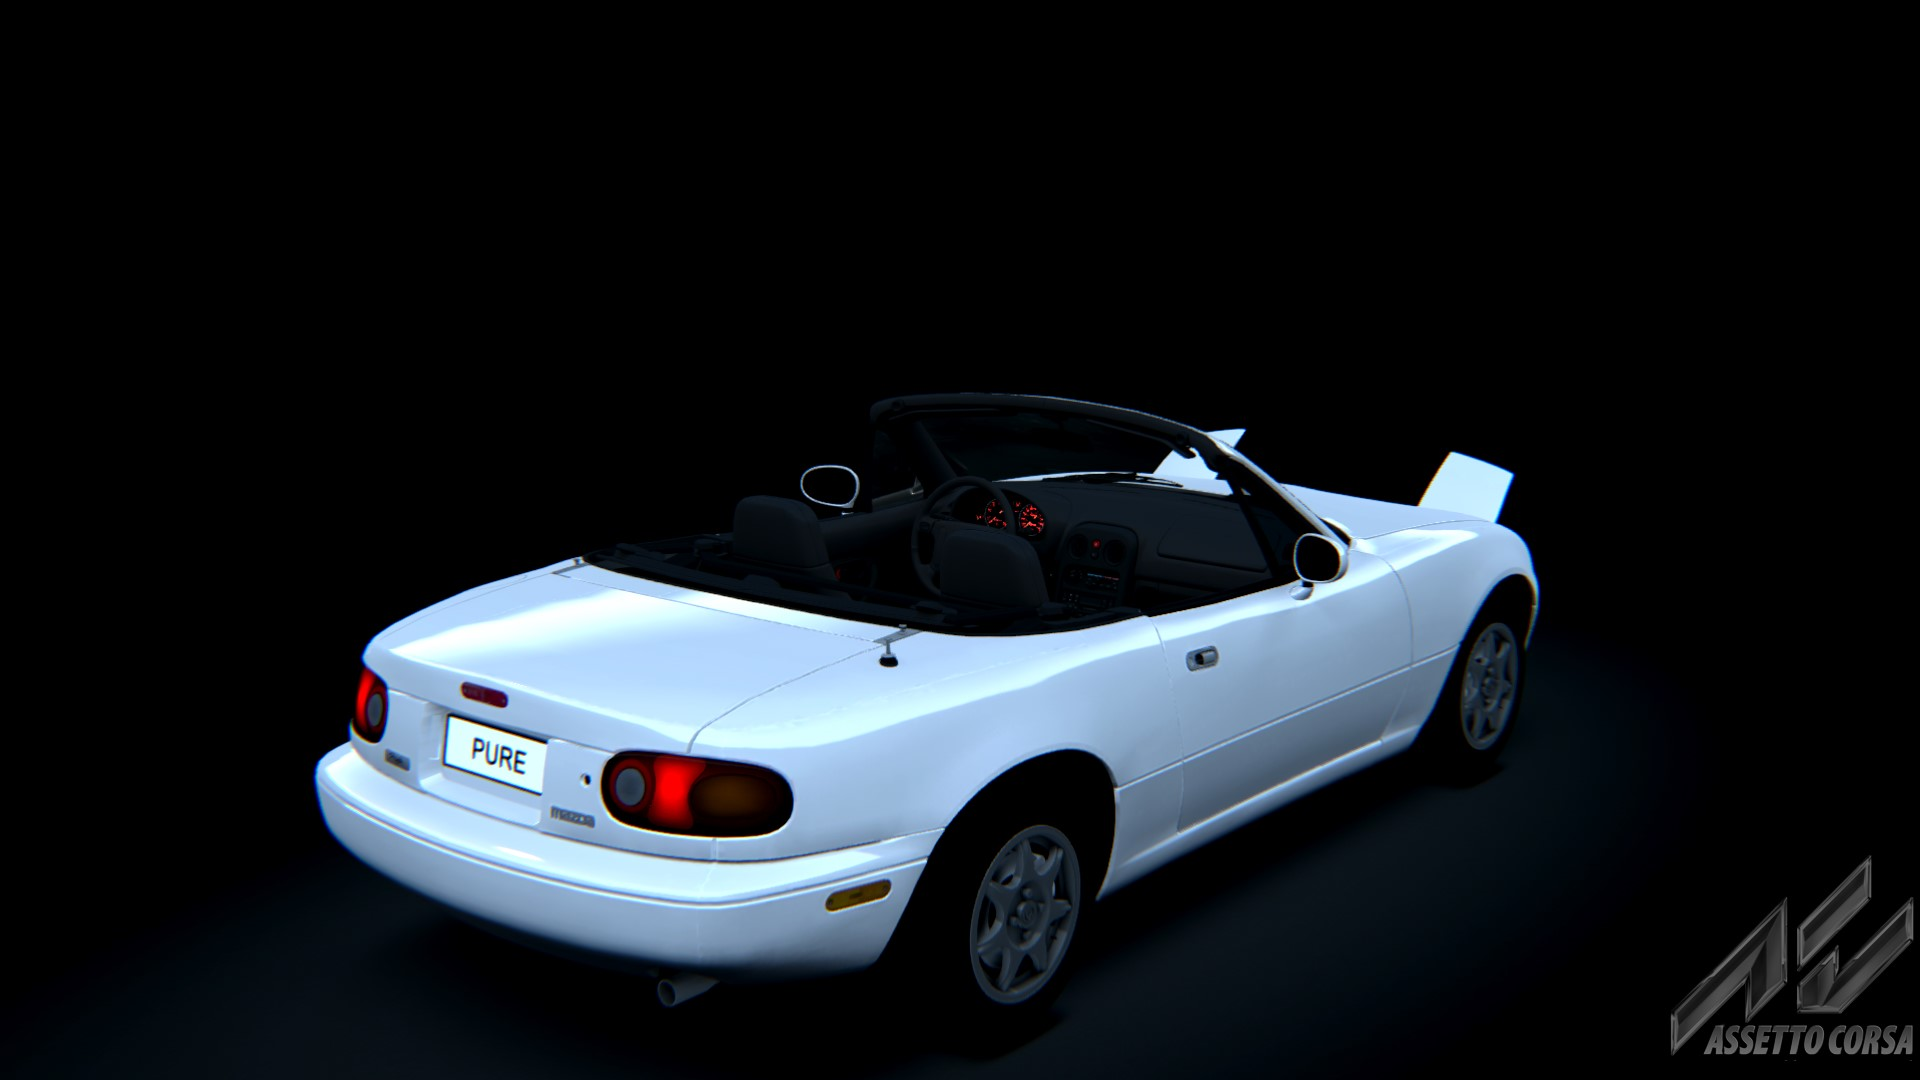 Showroom_mazda_miata_29-5-2015-23-23-46.jpg